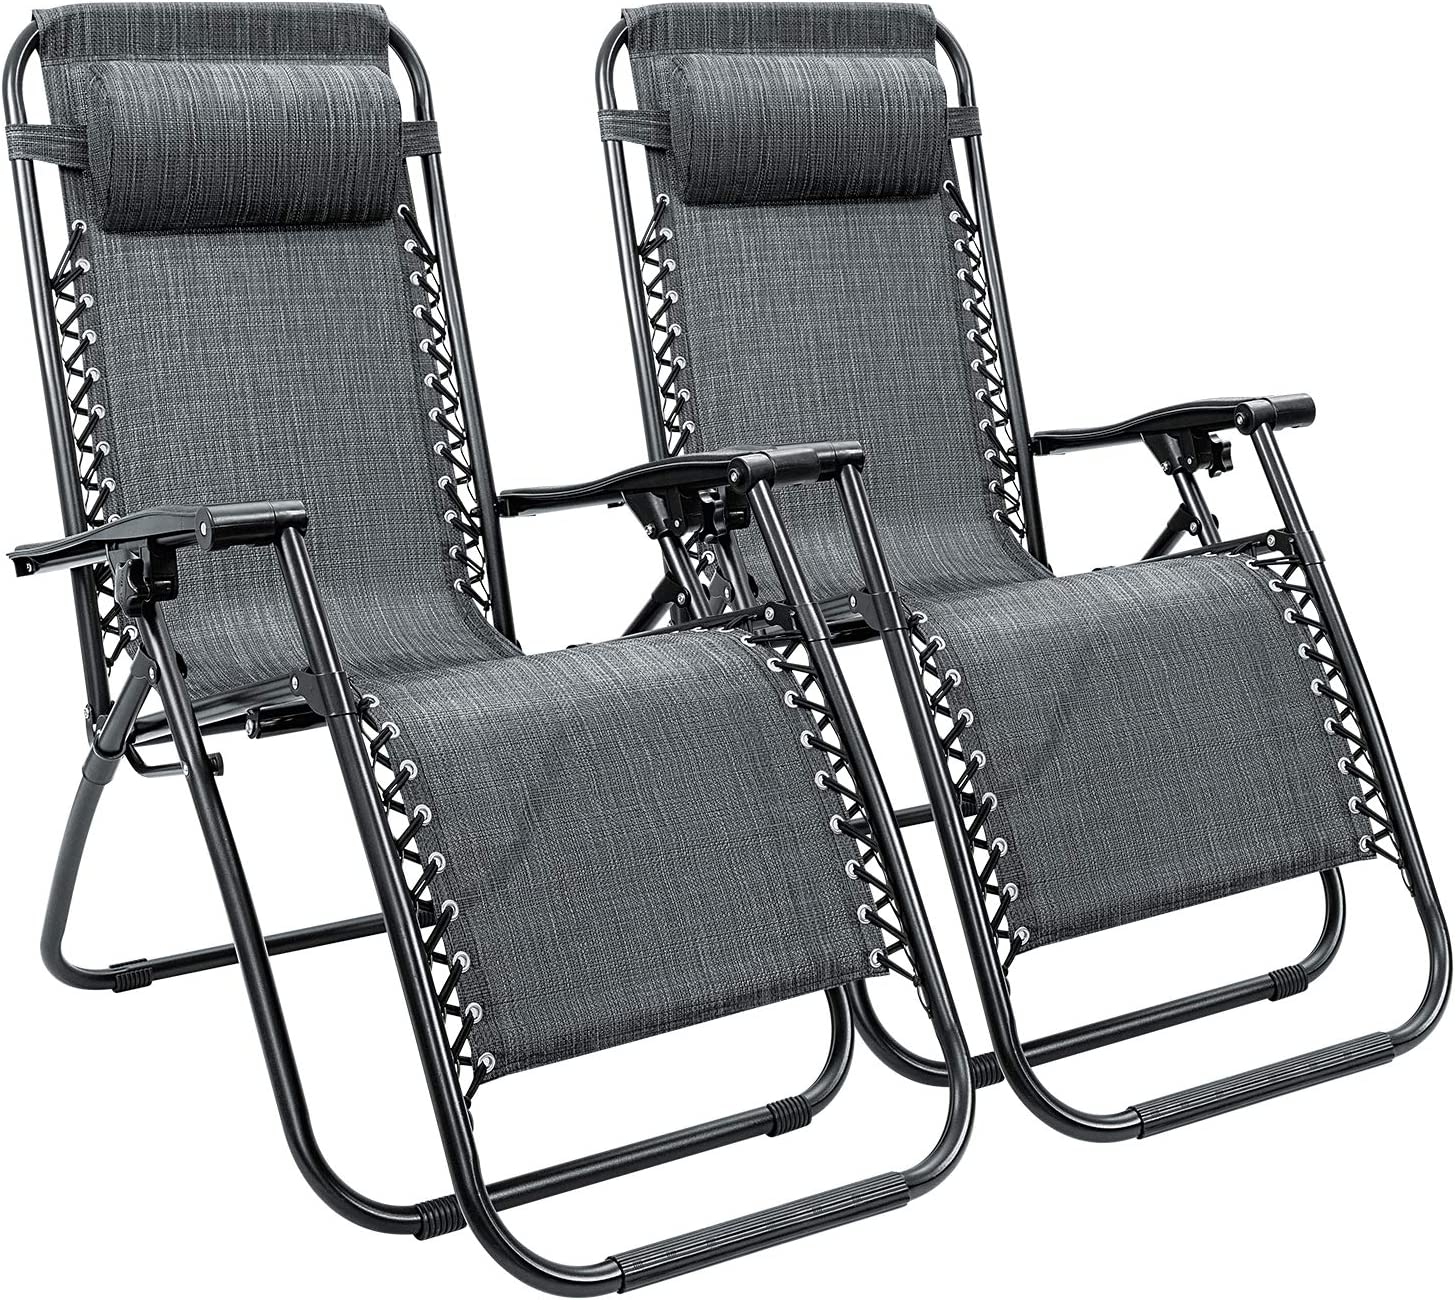 Homall Zero Gravity Chair Adjustable Folding Lawn Lounge Chairs Outdoor Lounge Gravity Chair Camp Reclining Lounge Chair with Pillows for Poolside Backyard and Beach Set of 2 Double-Gray